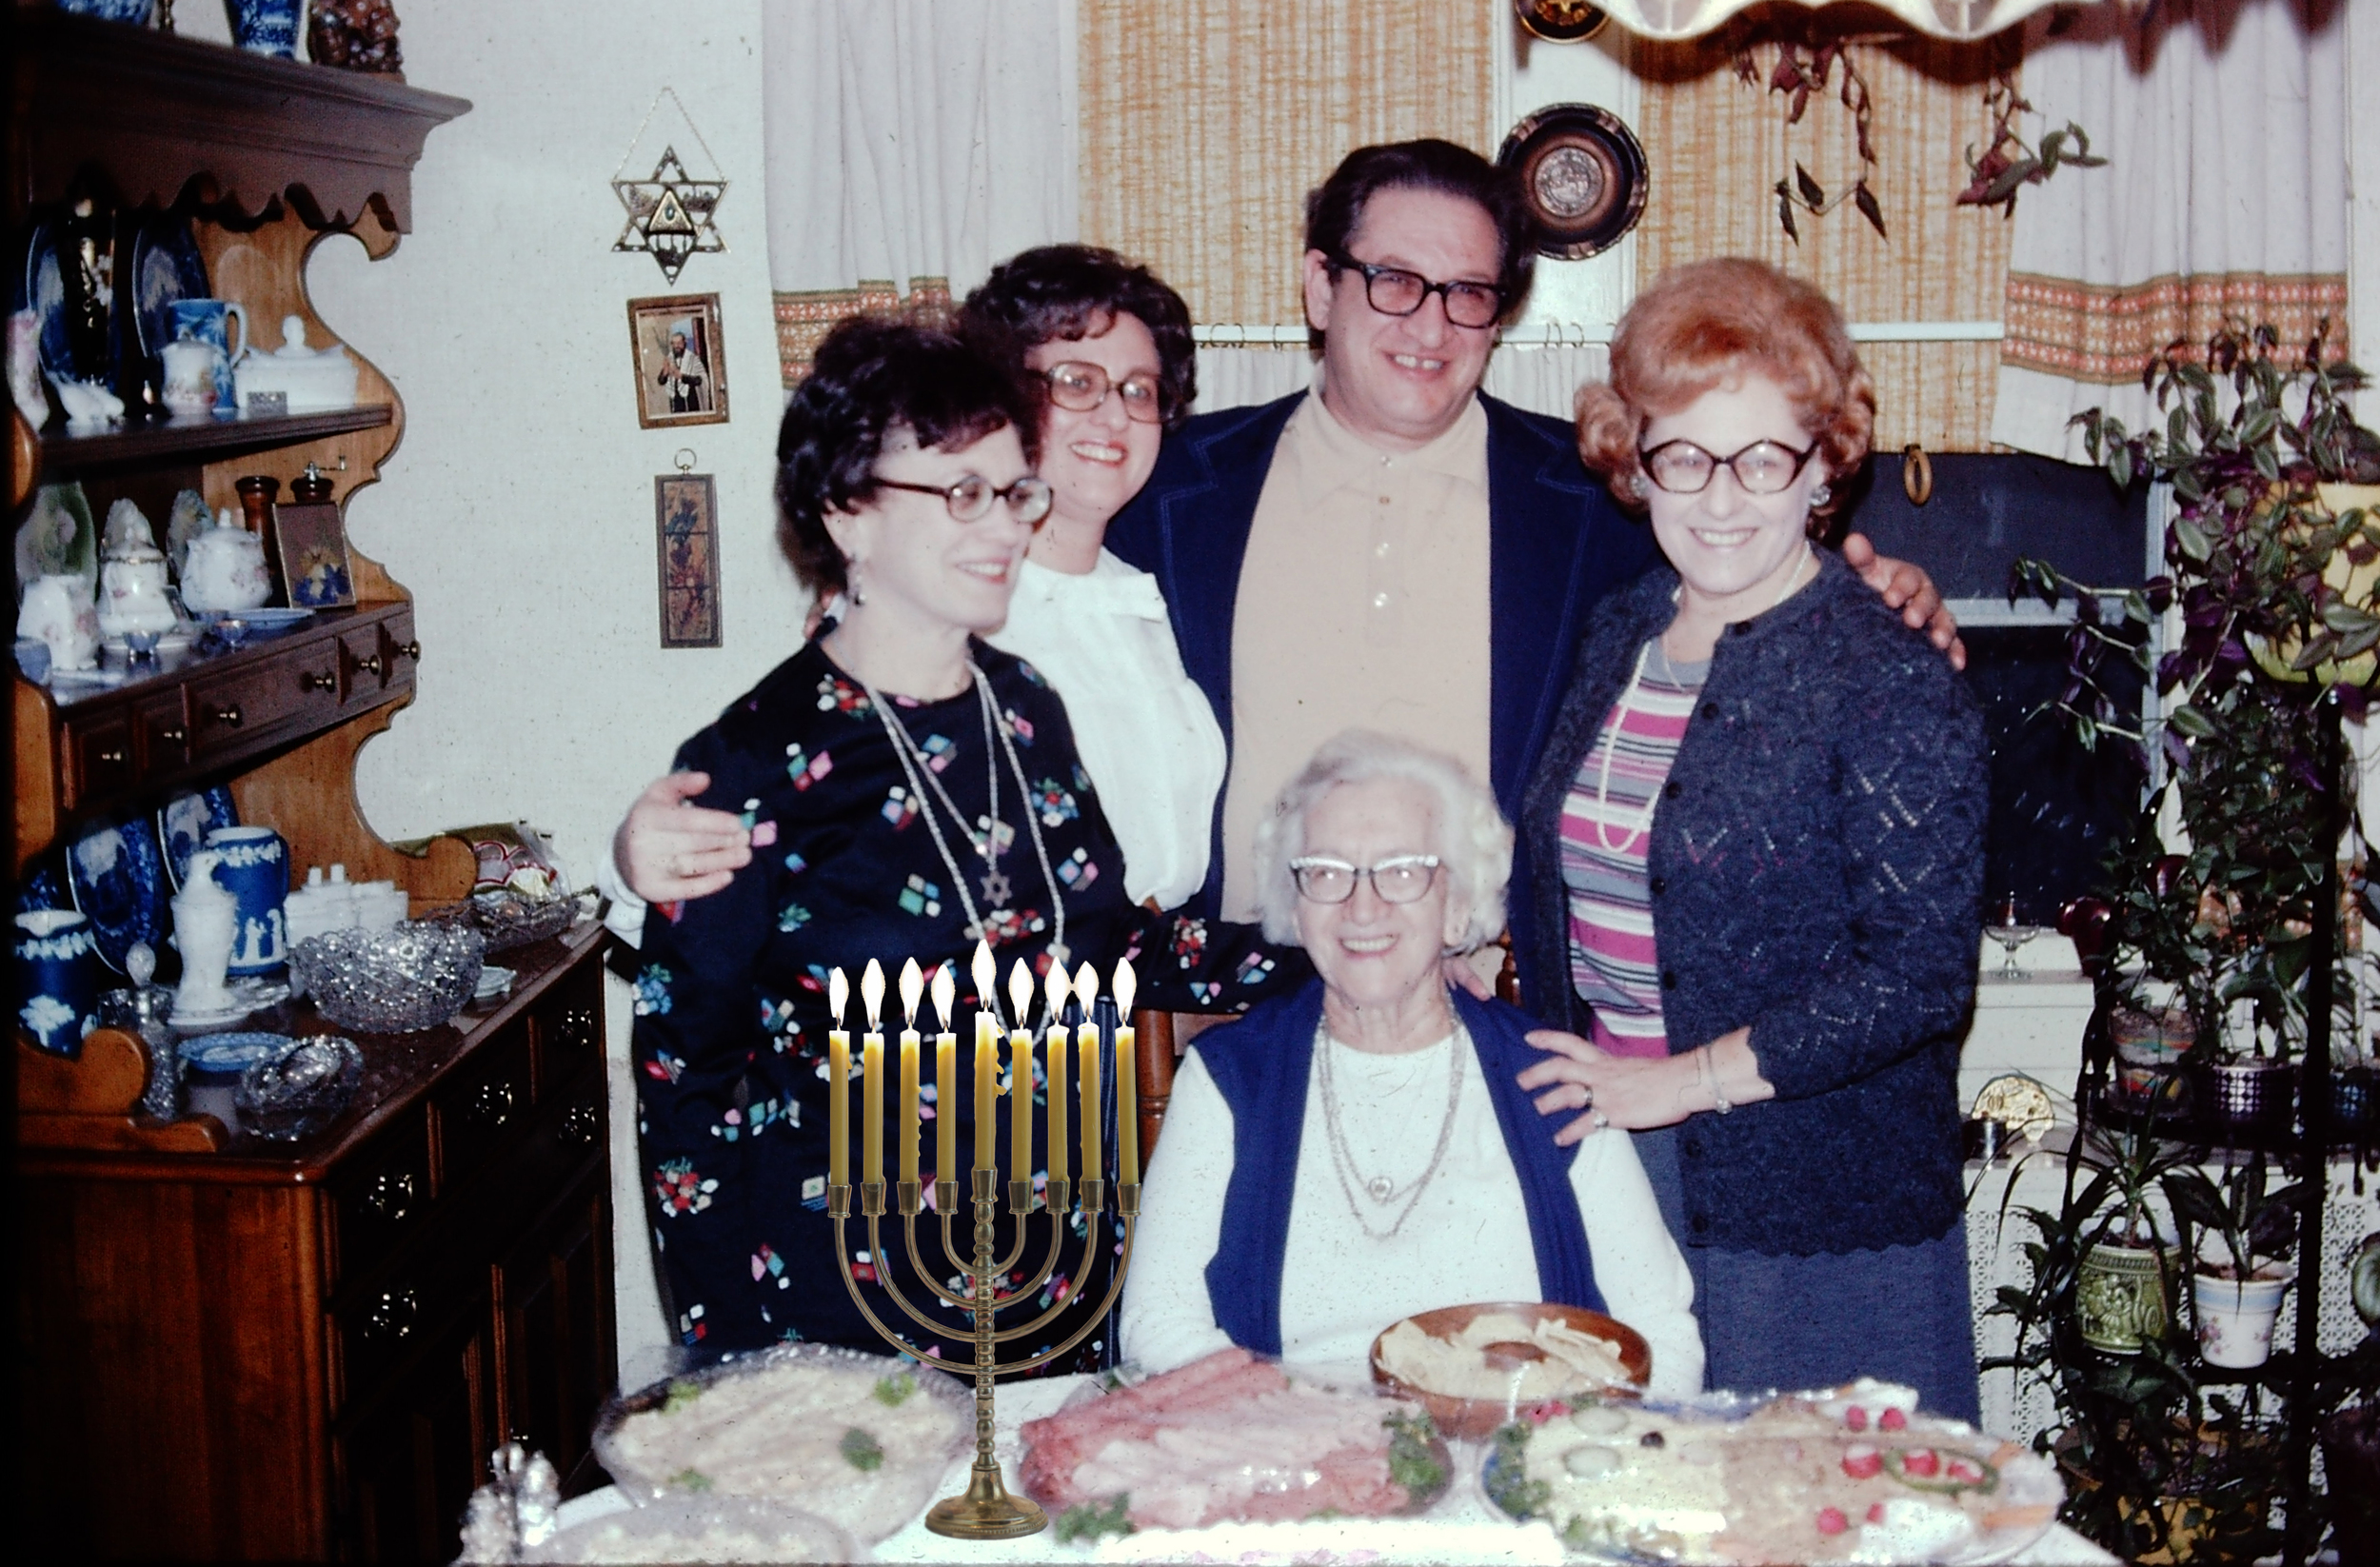 My great-grandmother with some of her children, including my bubby (second from the left). Menorah placed for conceptual purposes only :)